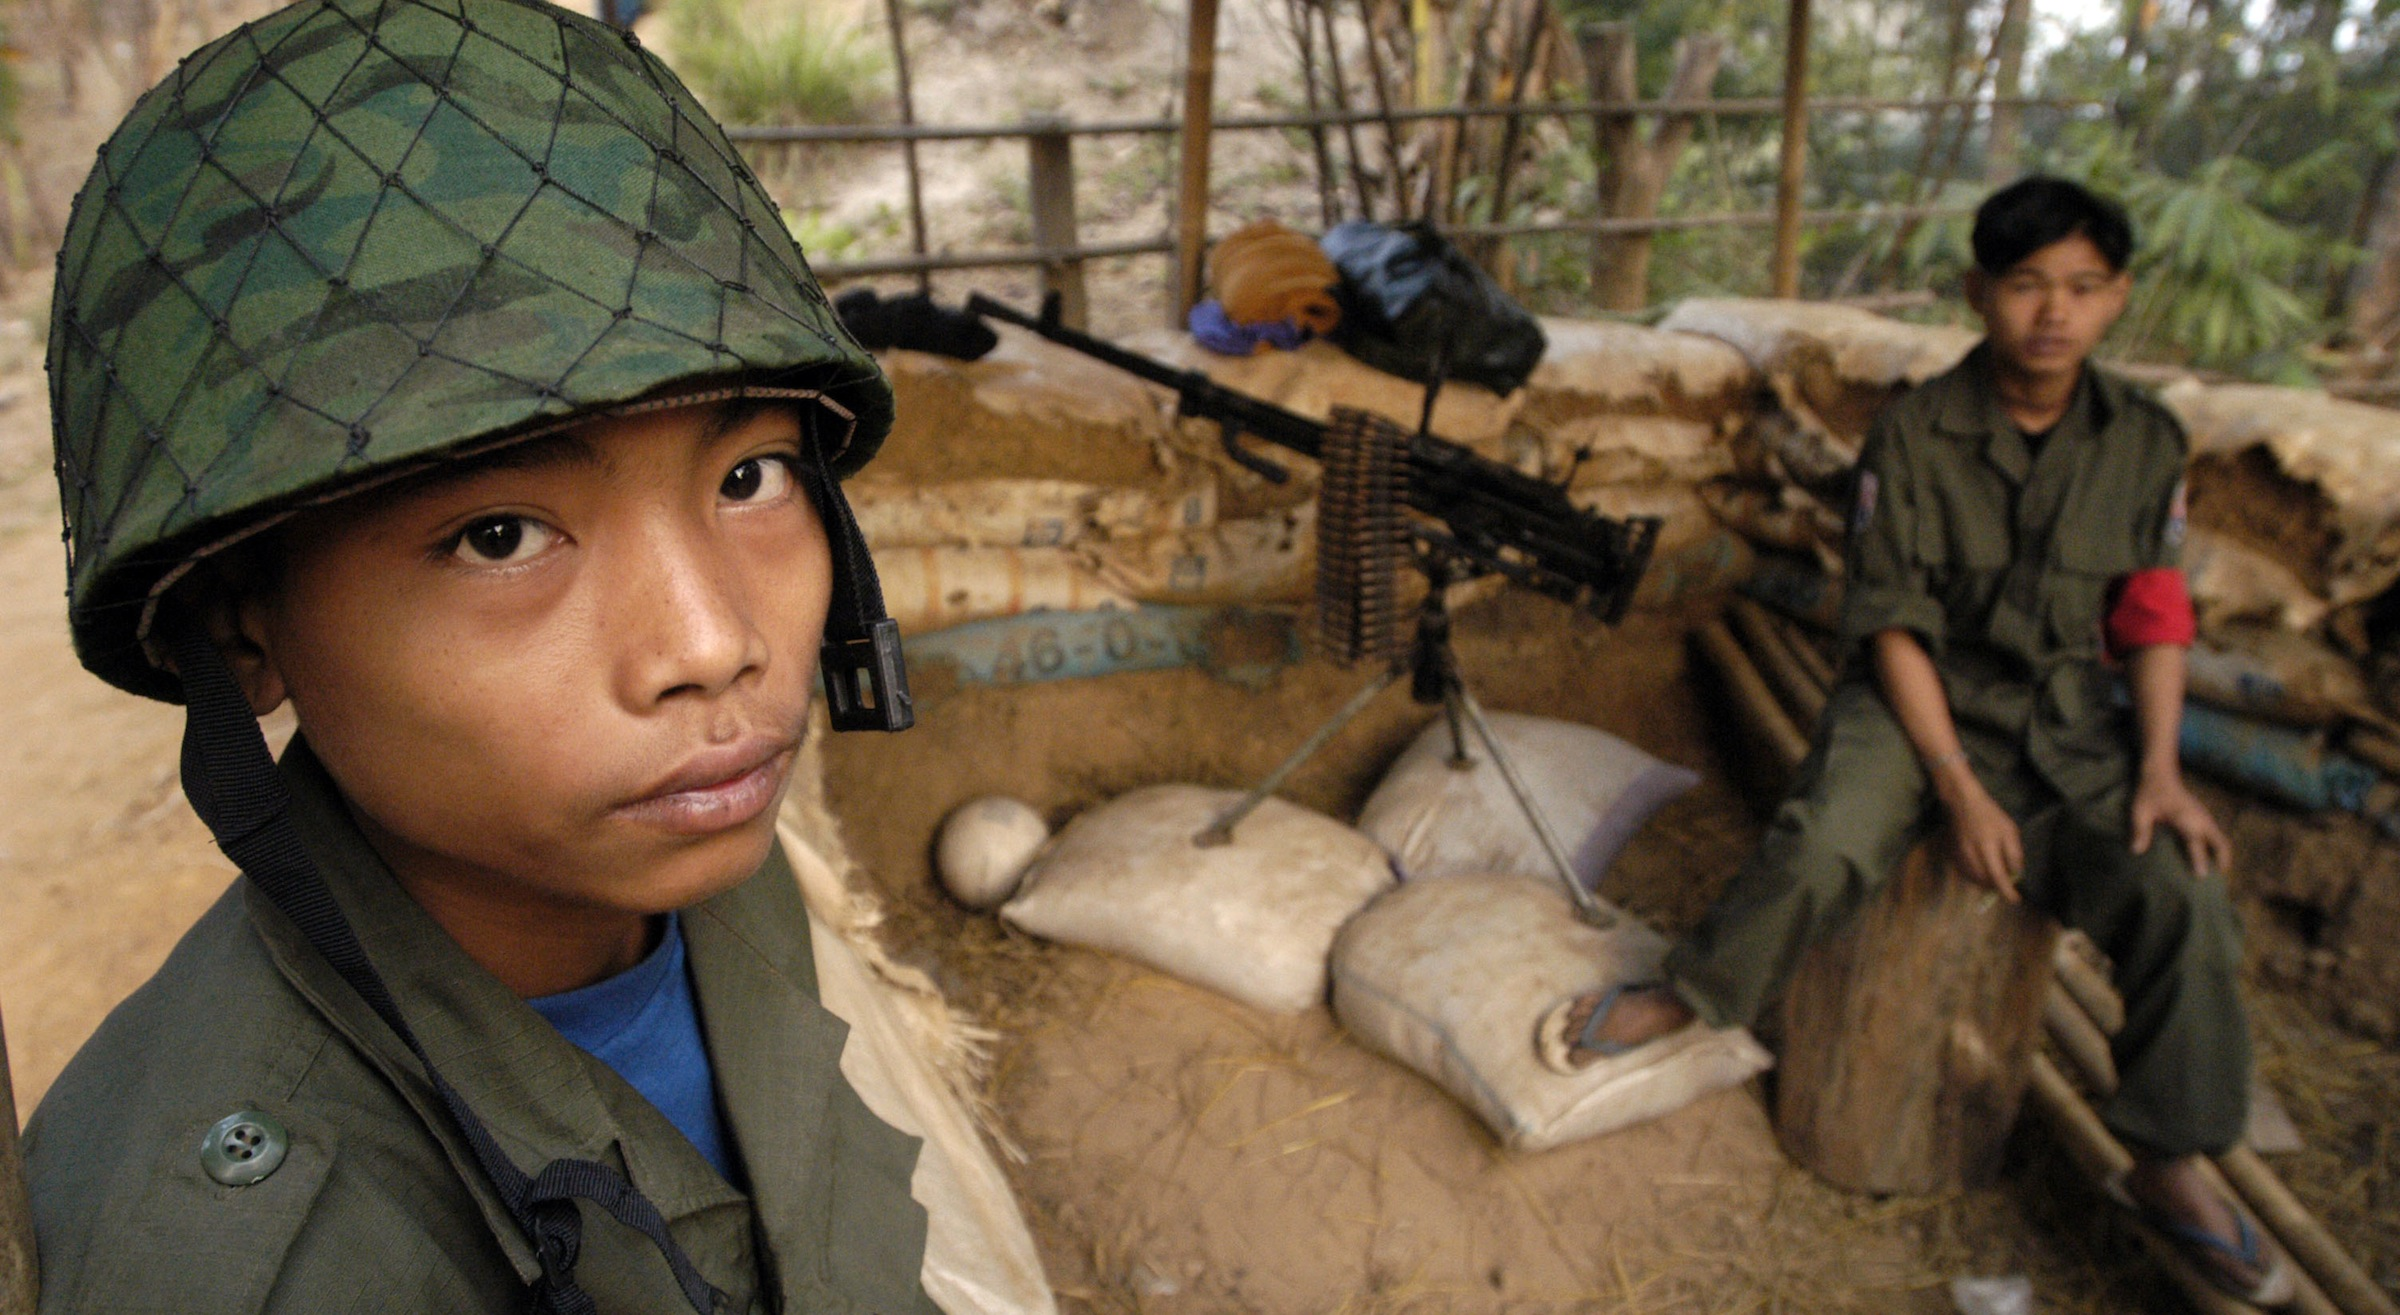 ** TO GO WITH STORY SLUGGED: MYANMAR CHILD SOLDIERS BY GRANT PECK ** Two young ethnic Karen boys man a guard post at New Manerplaw, Myanmar, Karen rebel territory Jan. 31, 2004. Myanmar's military government, already under criticism for abuses, is recruiting children as young as 10 into its armed forces, a U.S. rights group charged in a report released Wednesday, Oct. 31, 2007.  (AP PHoto/David Longstreath).